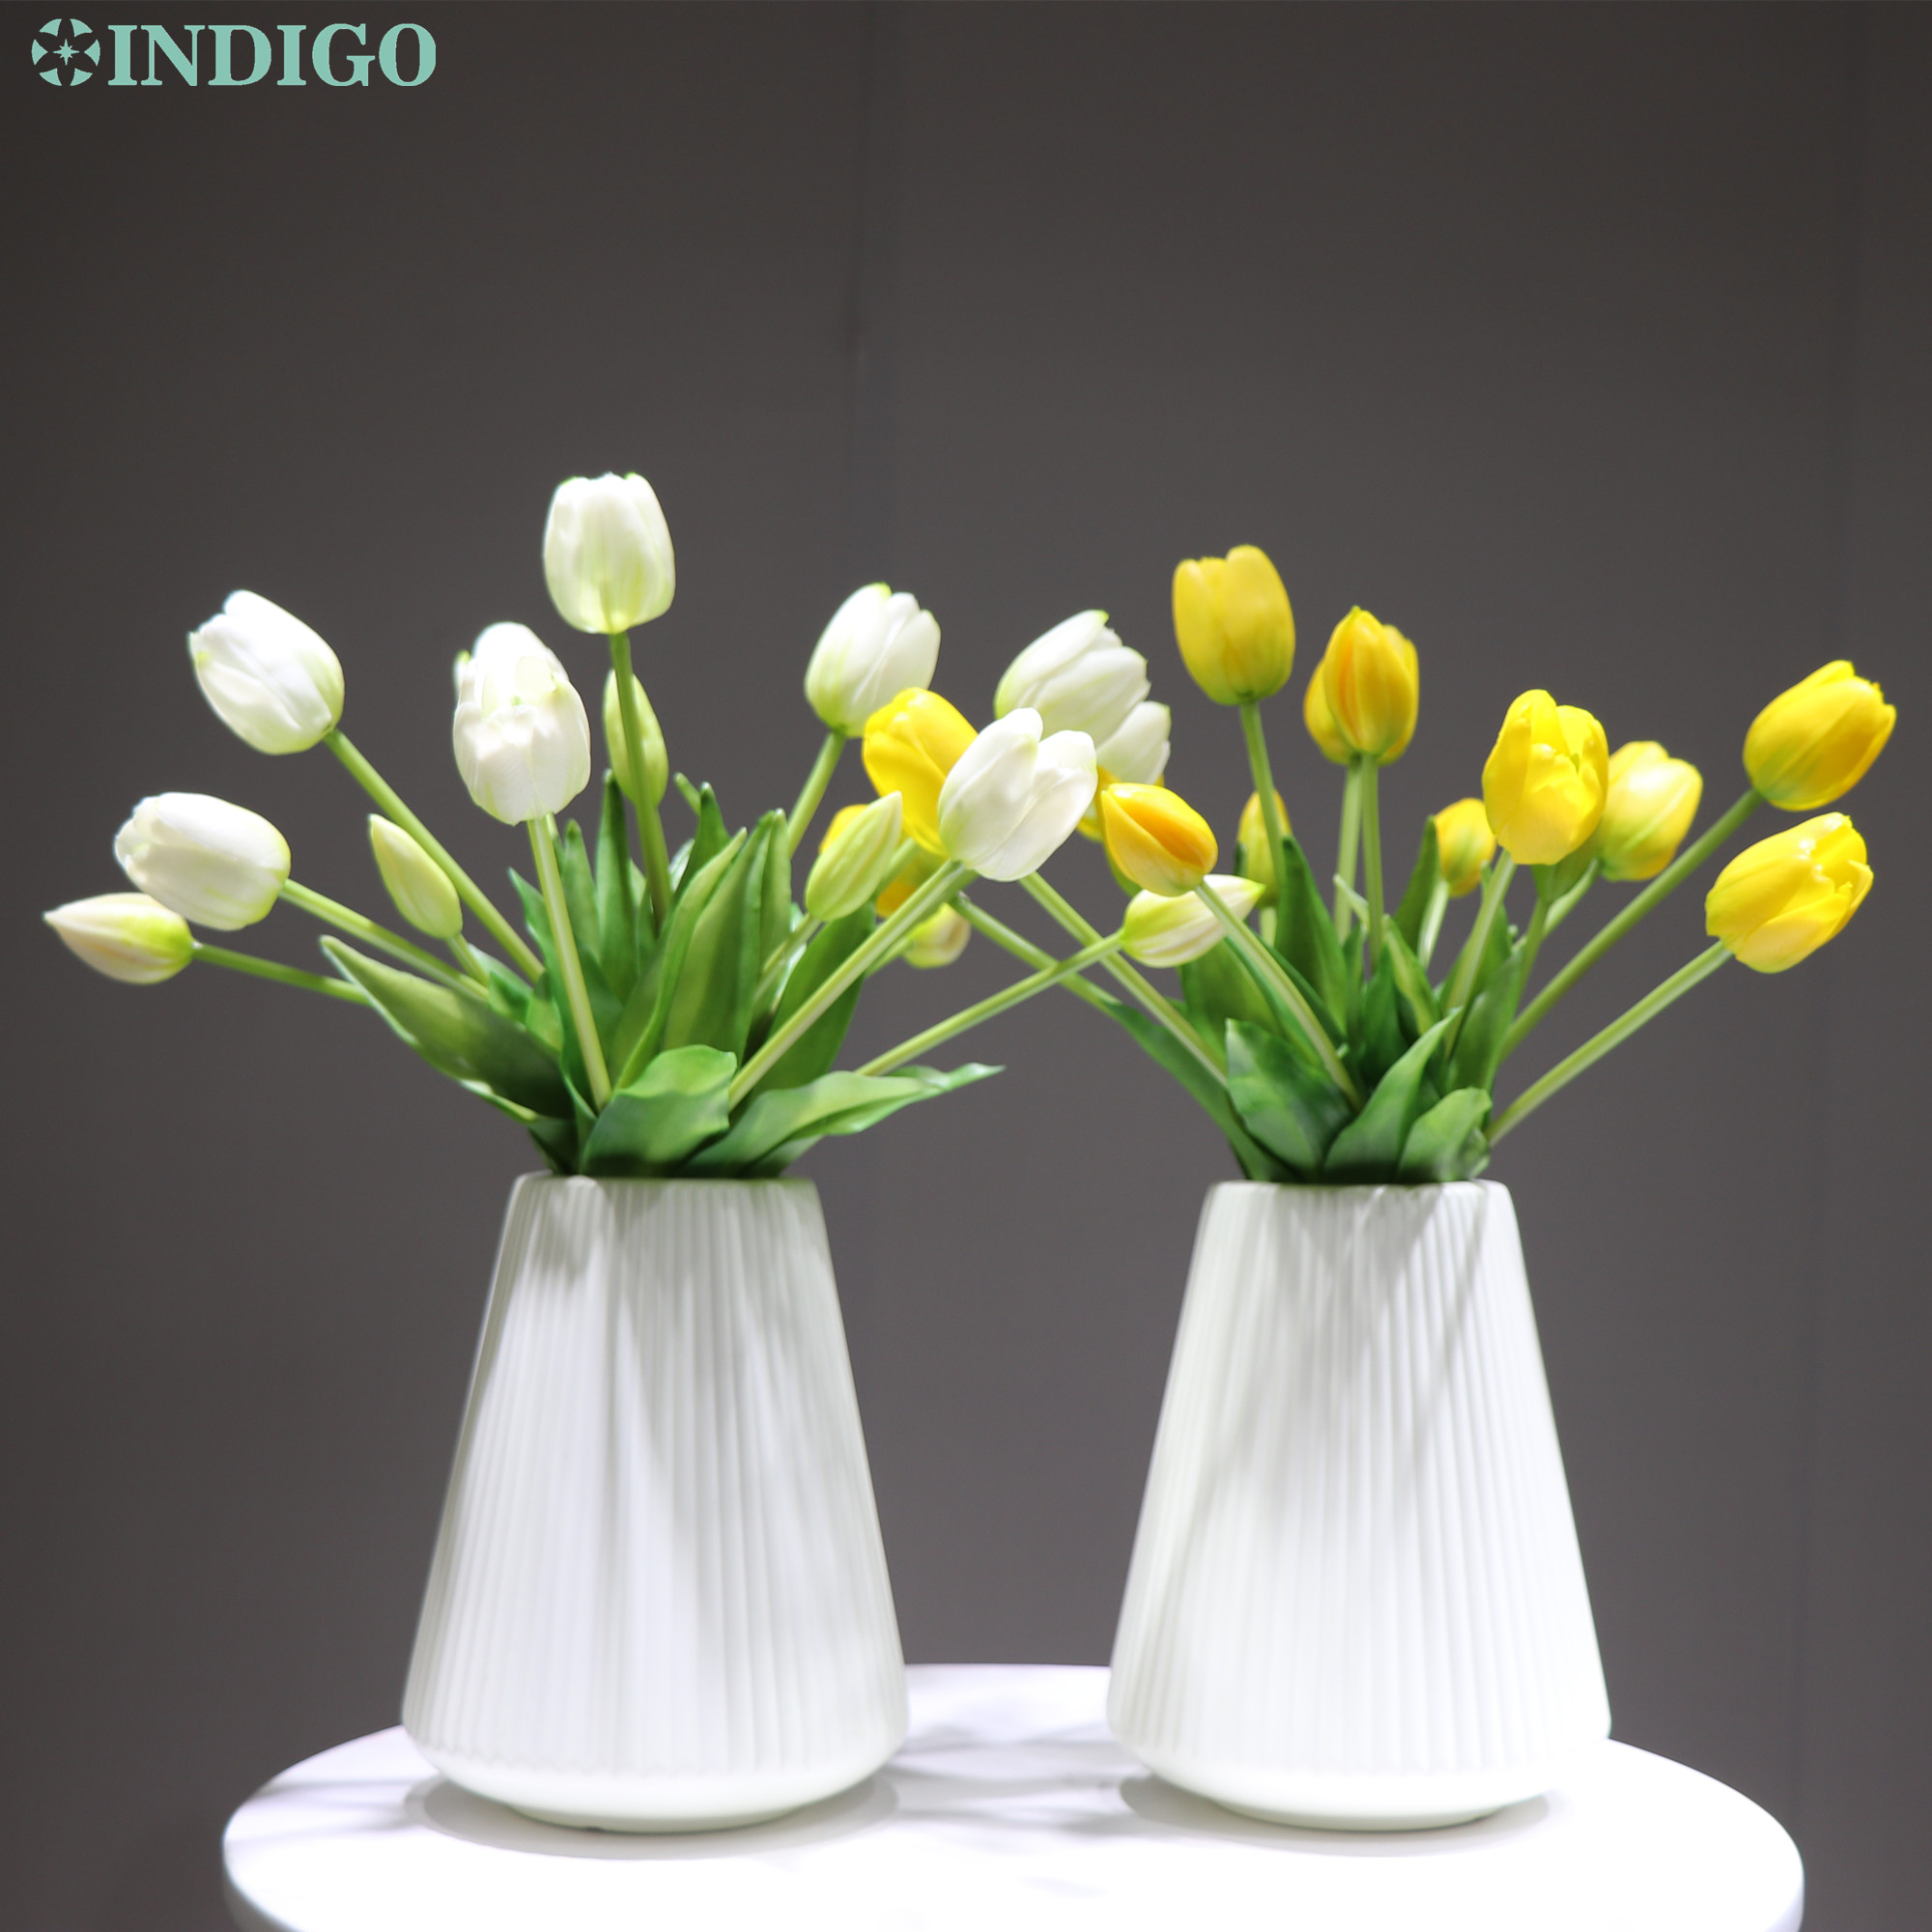 INDIGO-(3 flowers+2 bud)Bouquet Real Touch Silicone Tulip High Quality Yellow Tulip Home Artificial Flower Wedding DropShipping-5